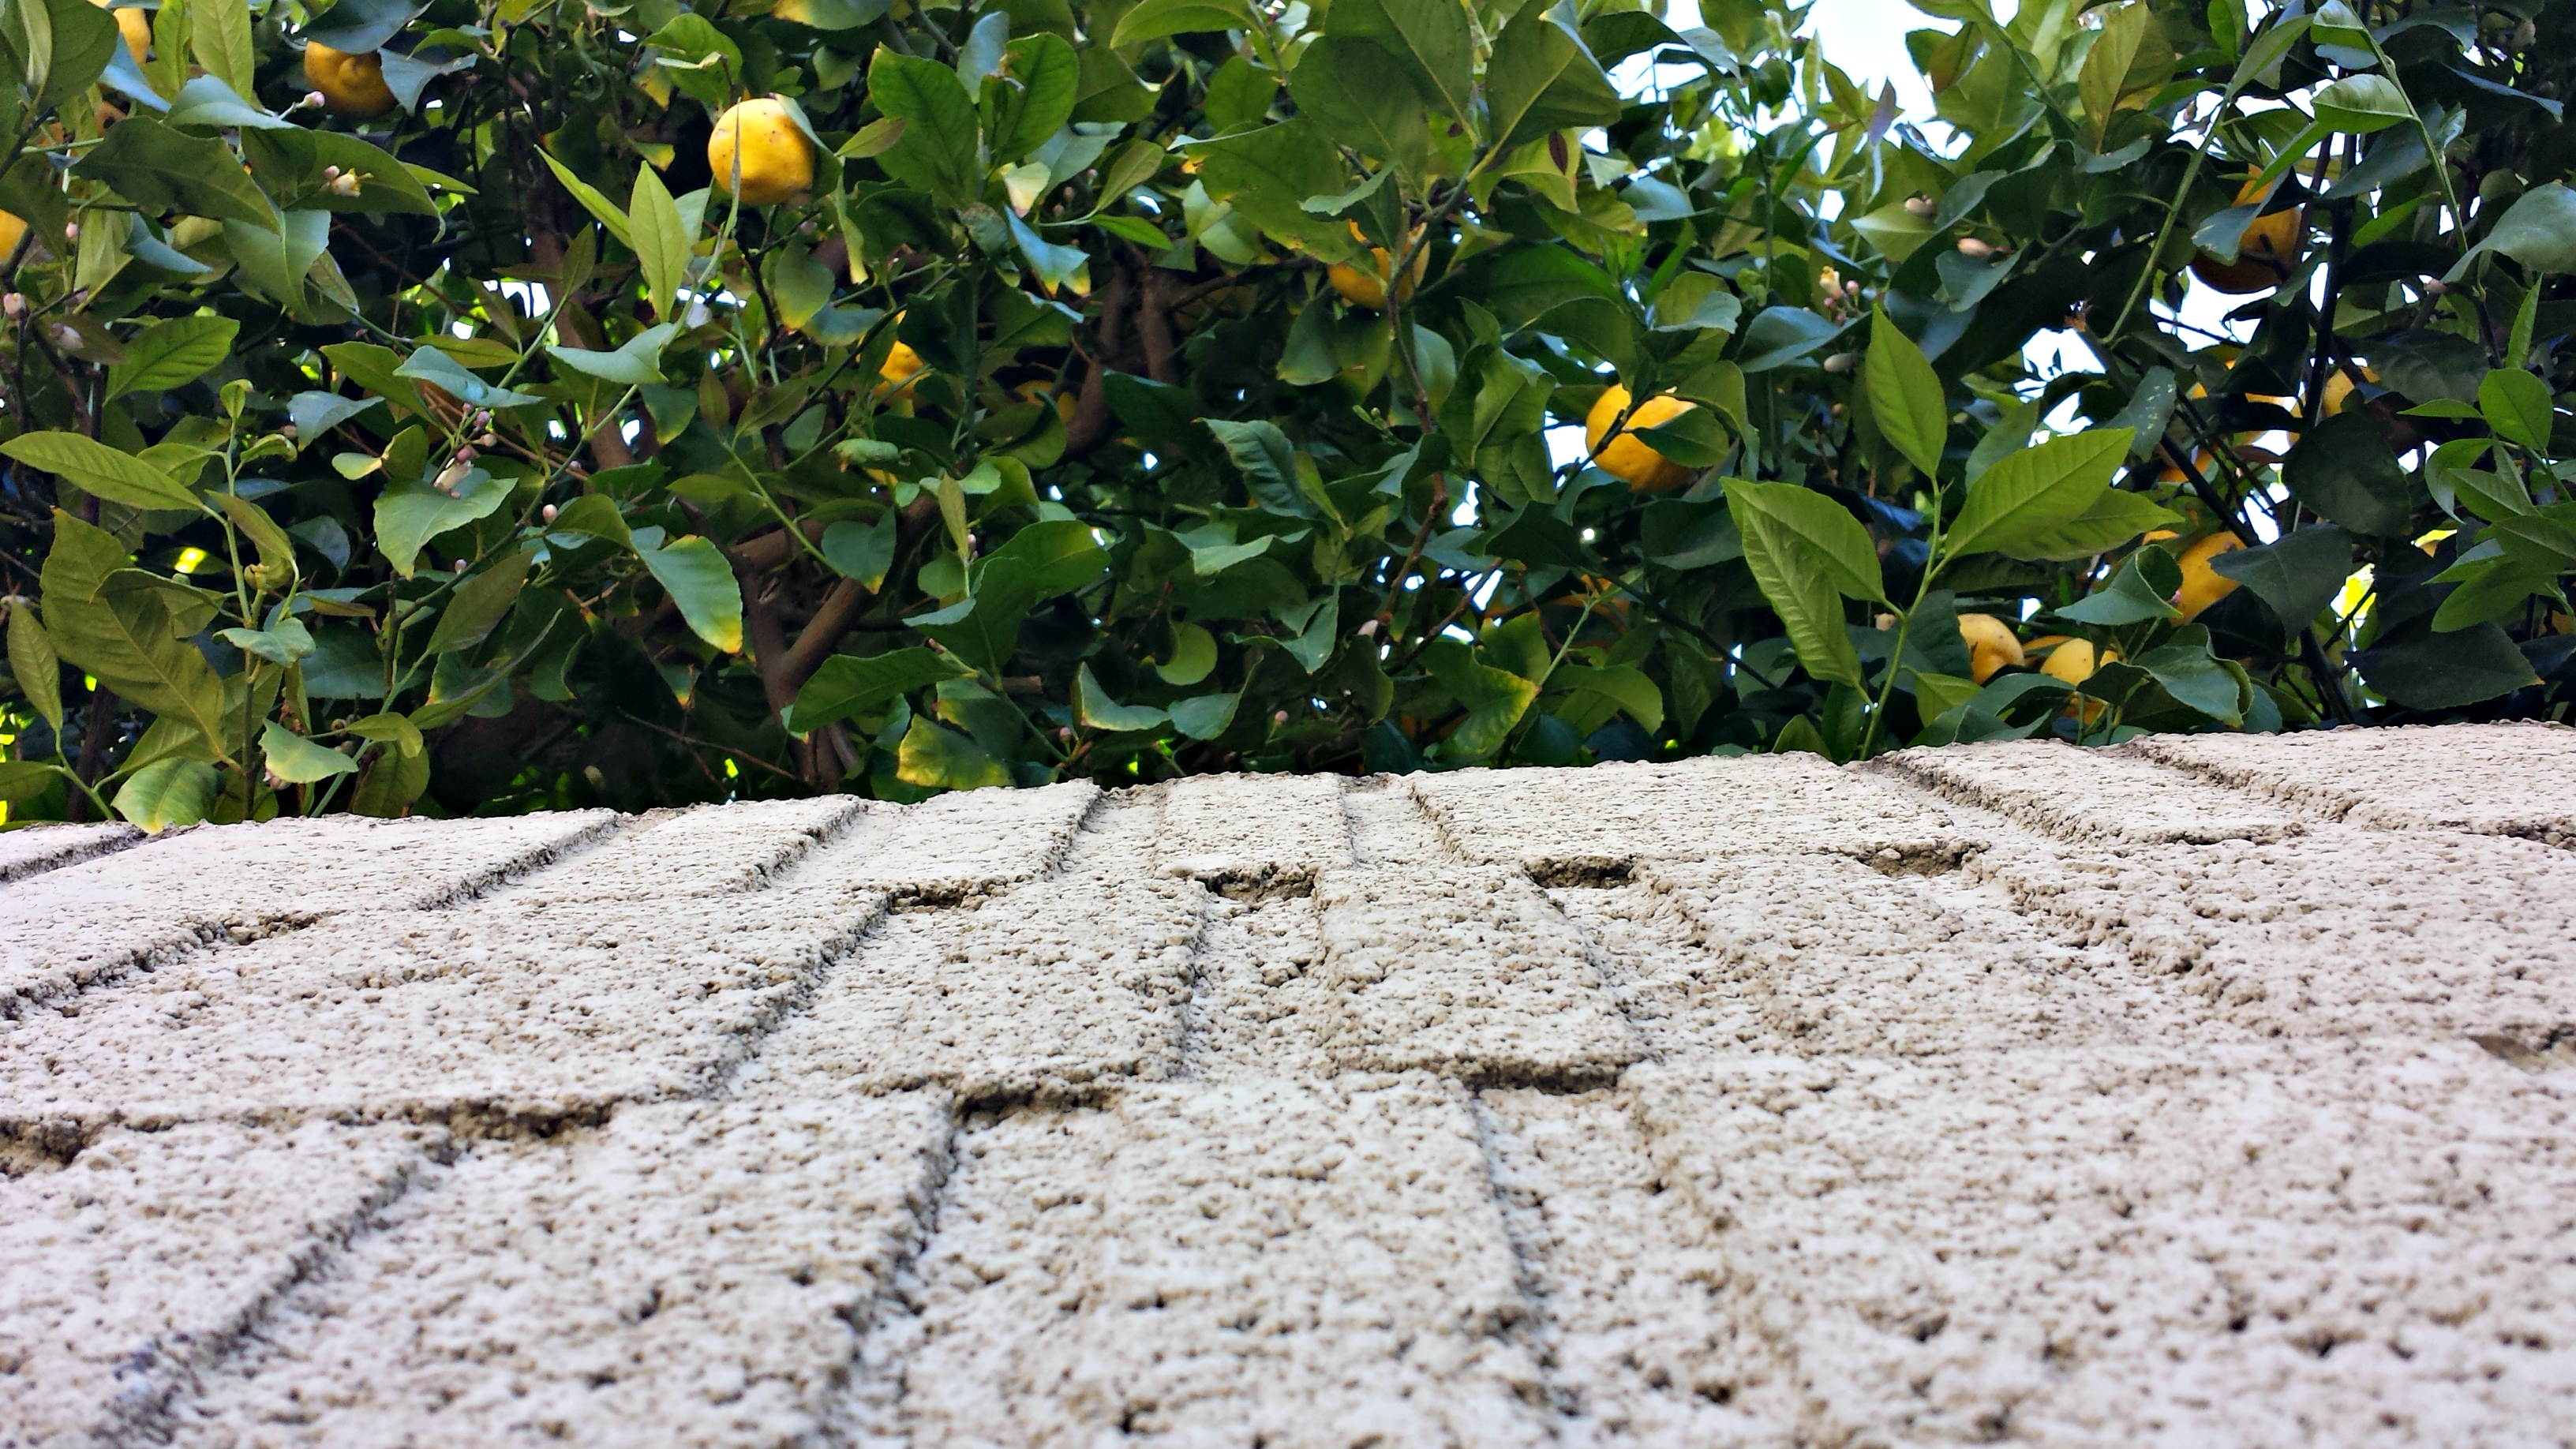 Roadside Citrus